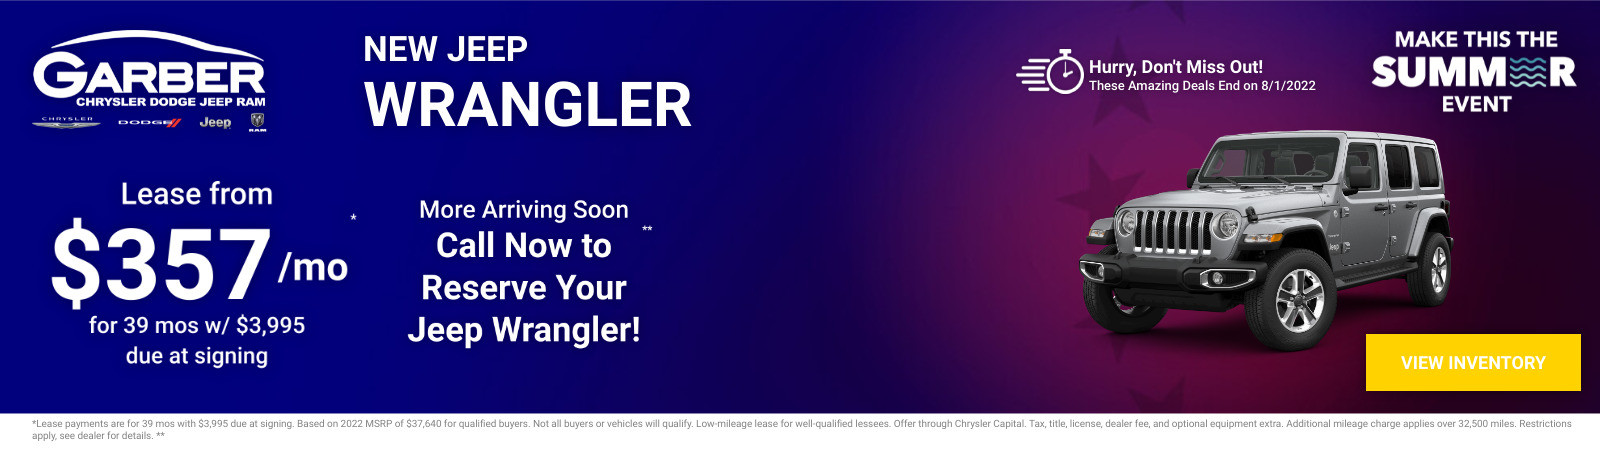 New Jeep Wrangler Current Deals and Offers in Green Cove Springs, FL